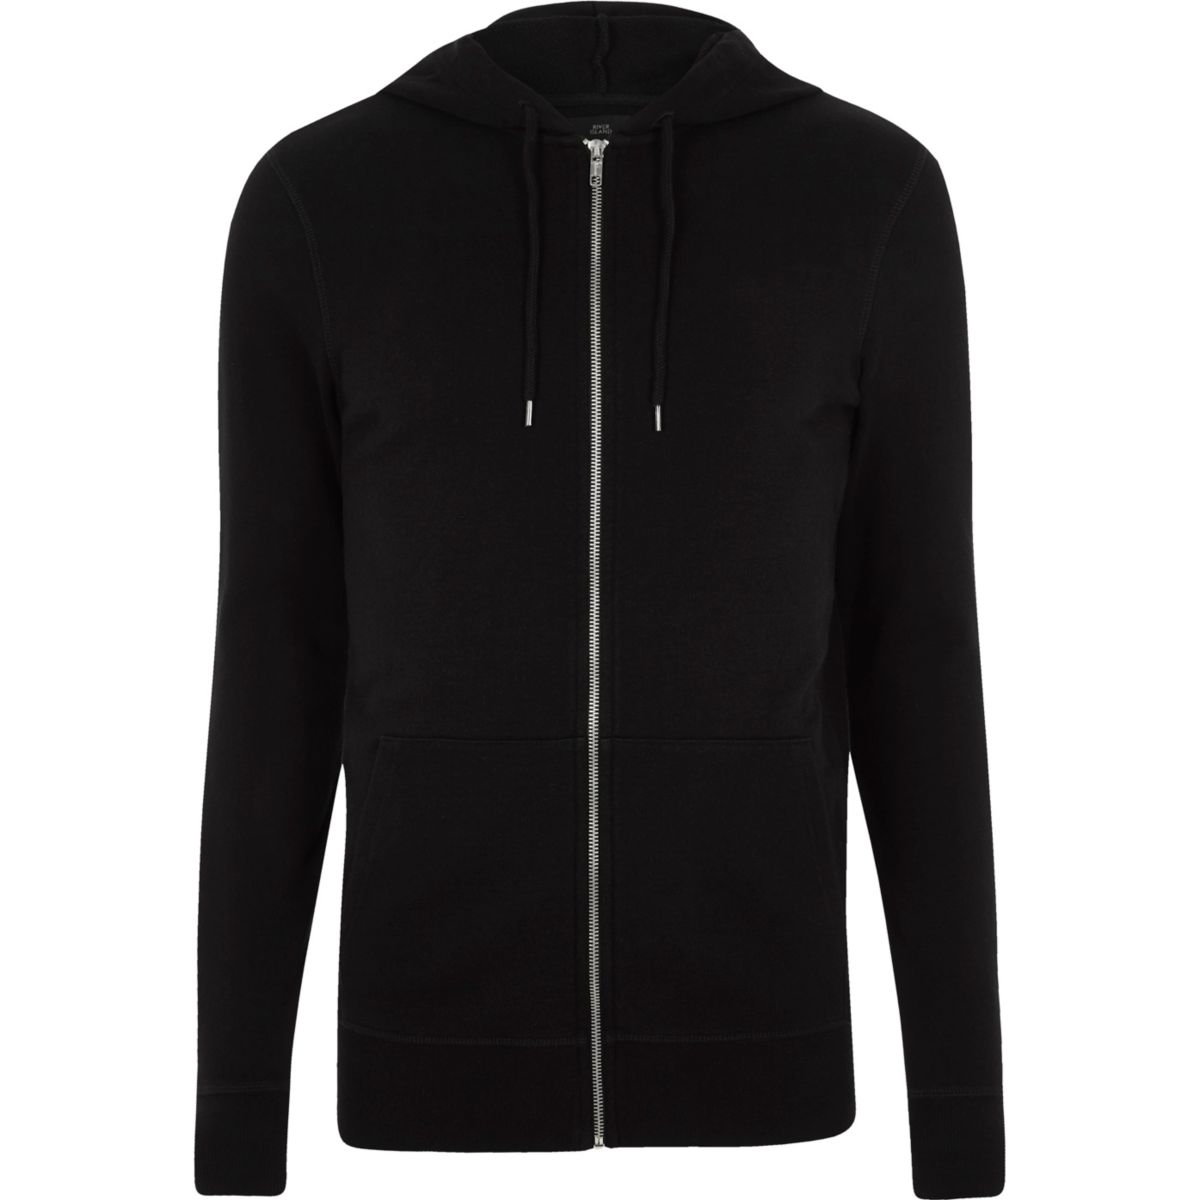 Black muscle fit zip up hoodie